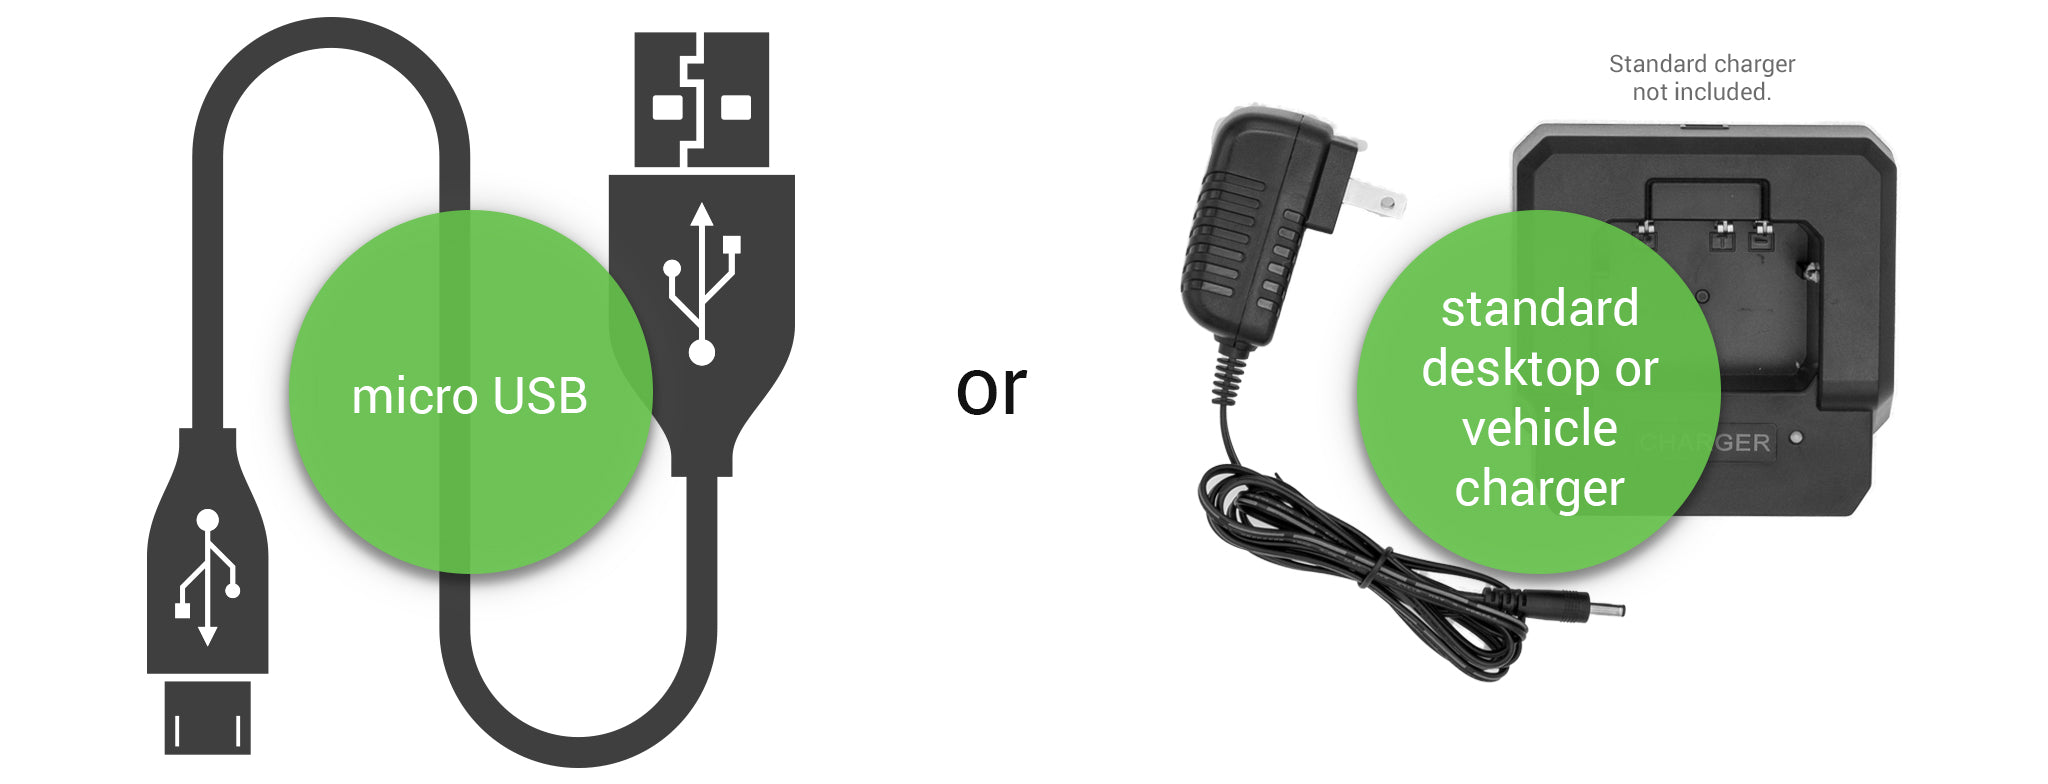 Micro USB or standard charger